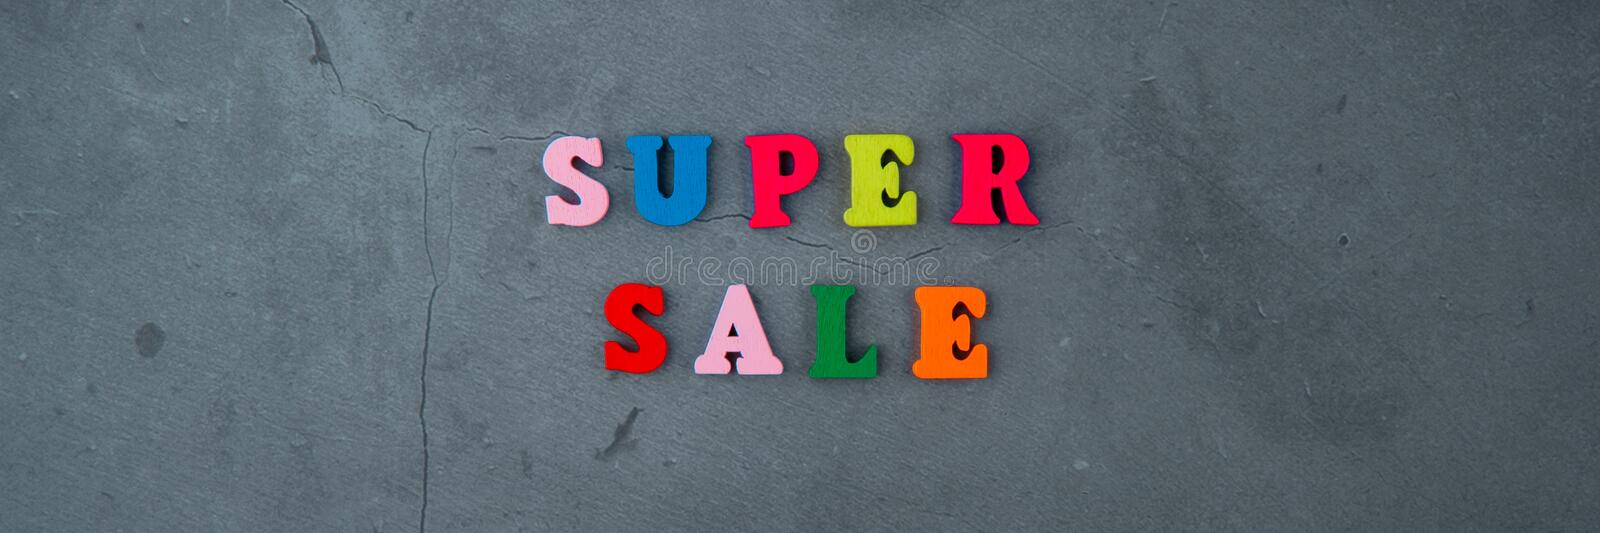 The multicolored super sale word is made of wooden letters on a grey plastered wall background.  stock photography